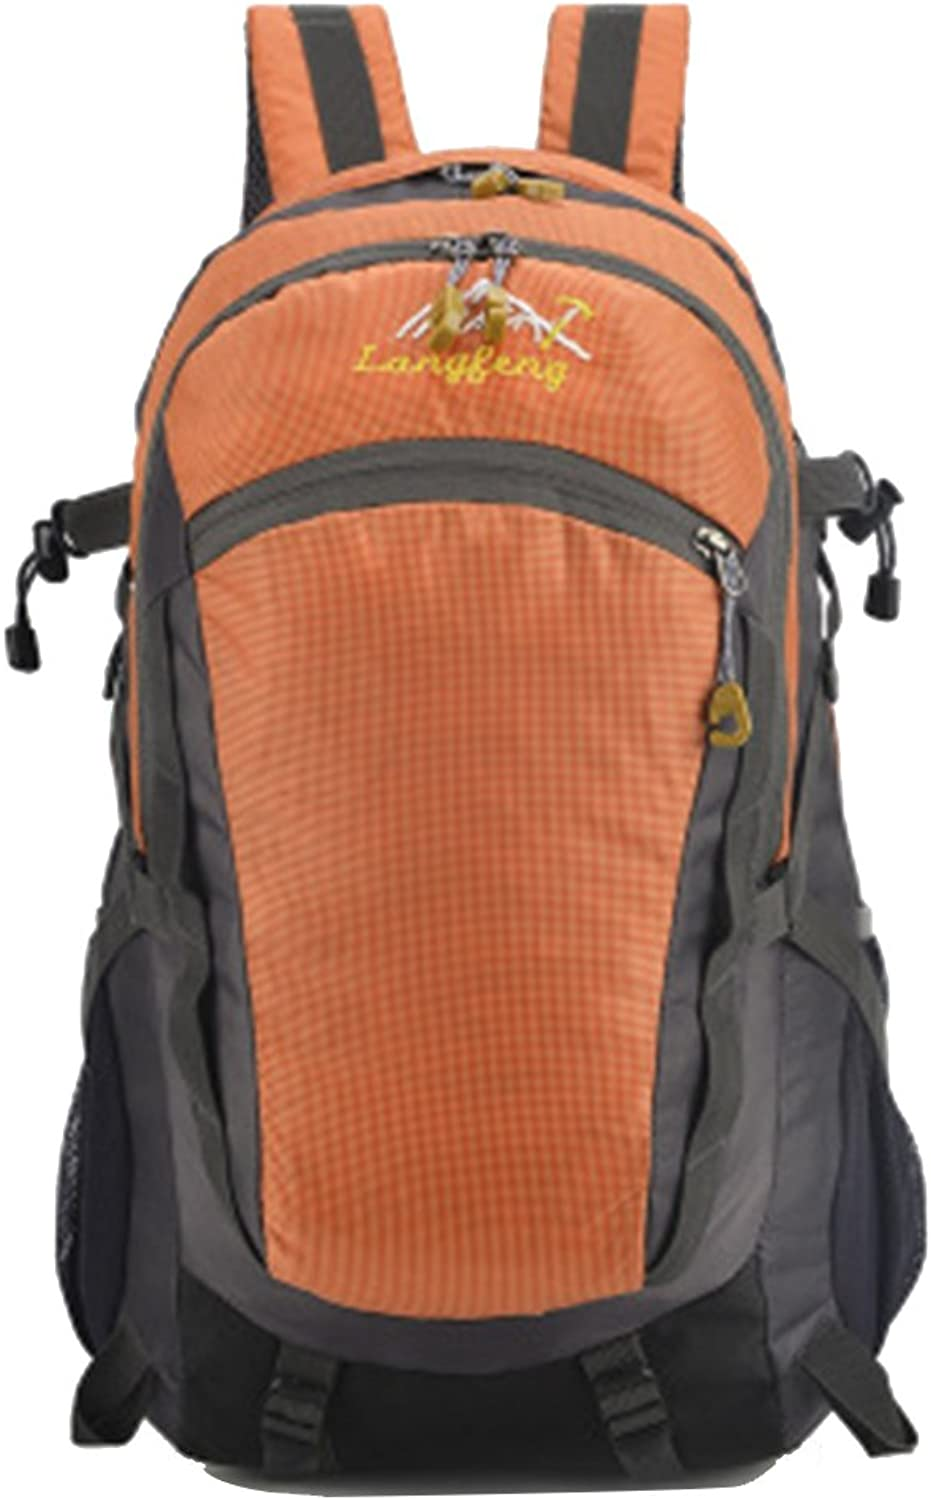 Hiking Backpack, Lightweight Backpack Men and Women Riding Sports Travel Mountaineering Bag Rucksack Large Capacity for Outdoor Camping Trekking Travel Climbing